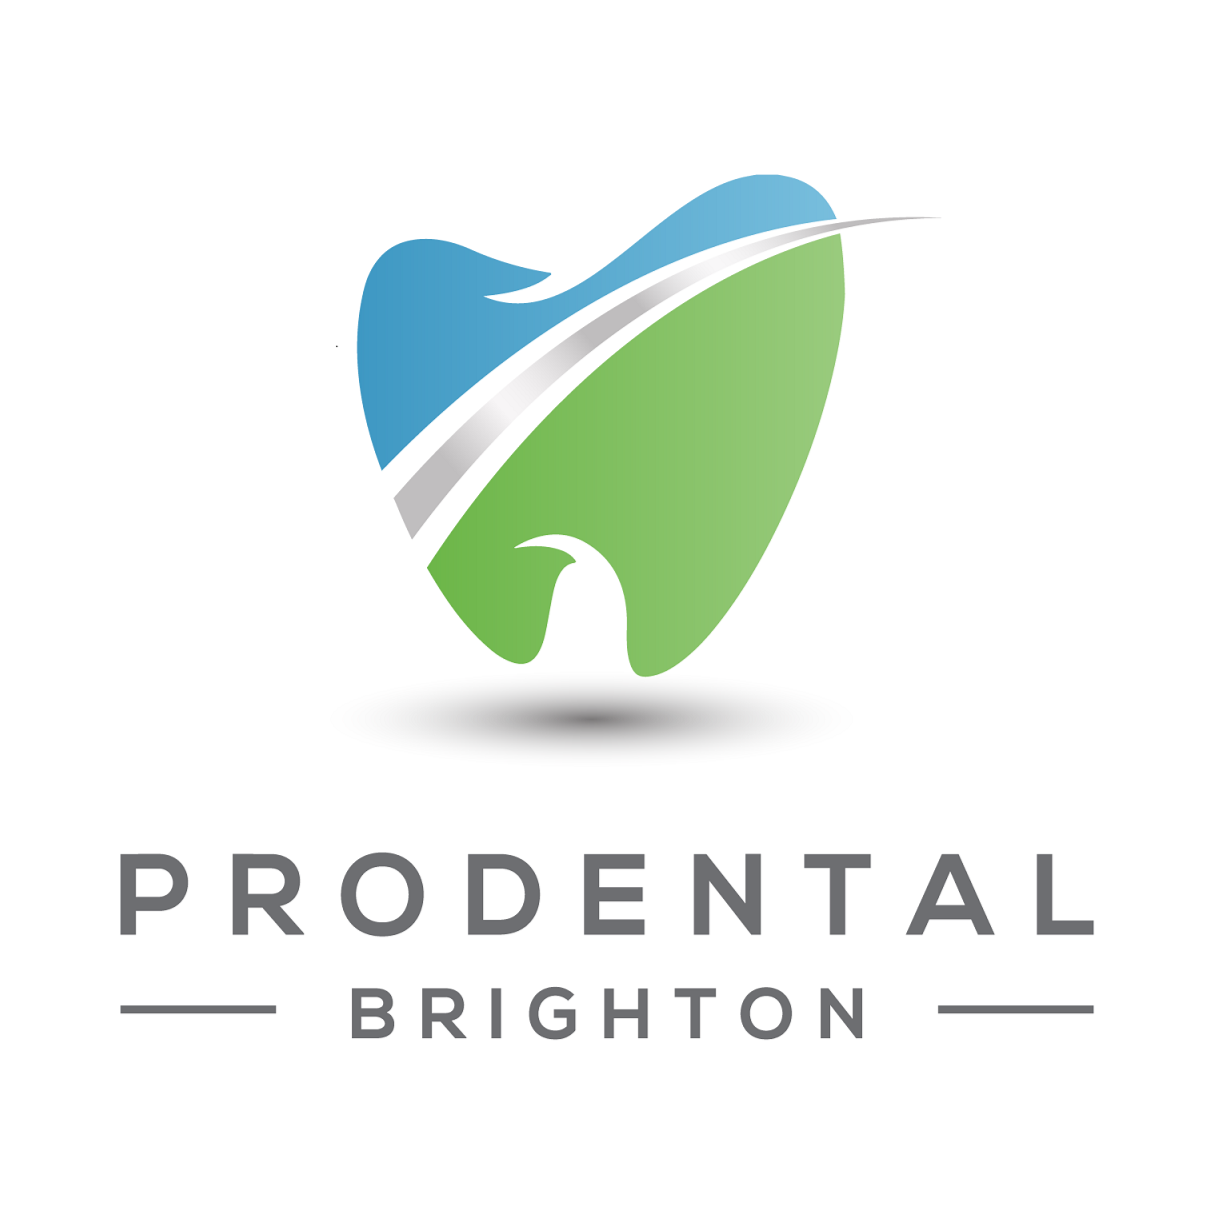 ProDental Brighton